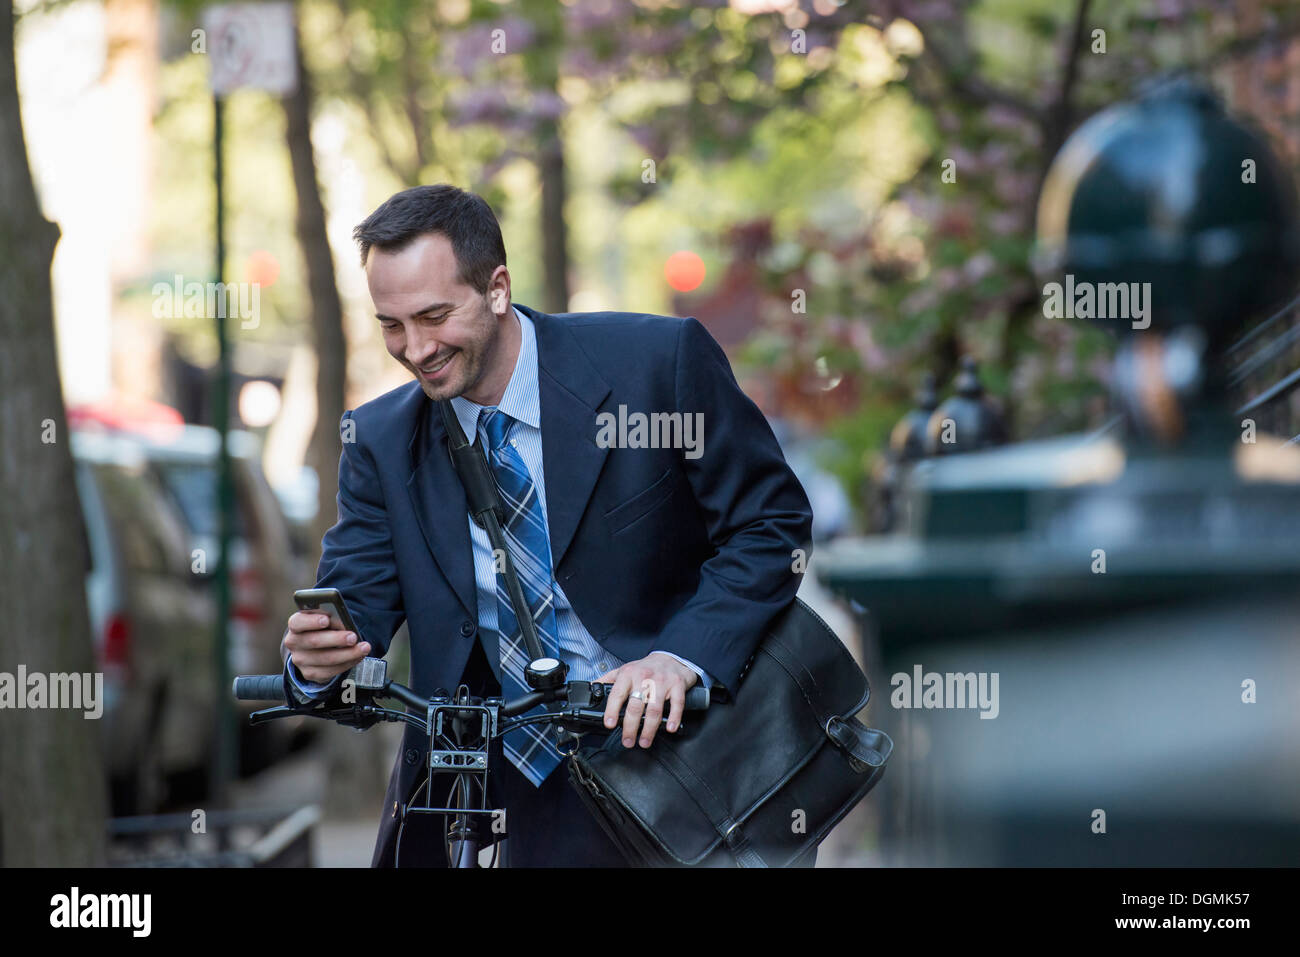 Un uomo in un business suit, all'aperto in un parco. Seduto su di una bicicletta. Foto Stock